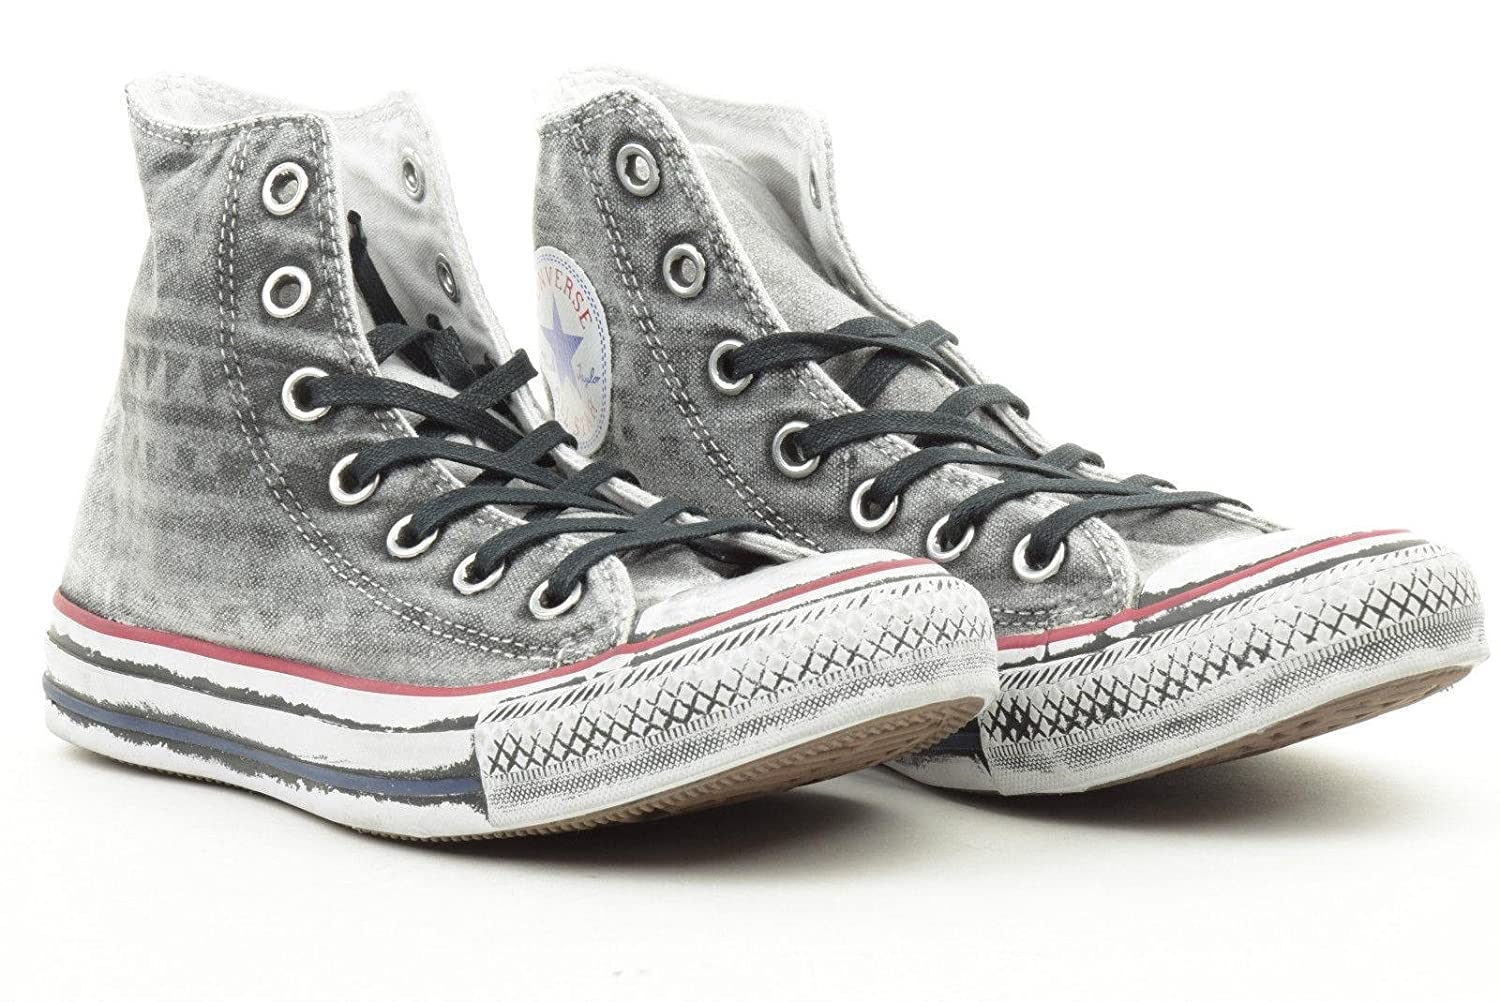 Converse Turnschuhe Frau 1C15SP10 All Star Hallo Canvas LTD